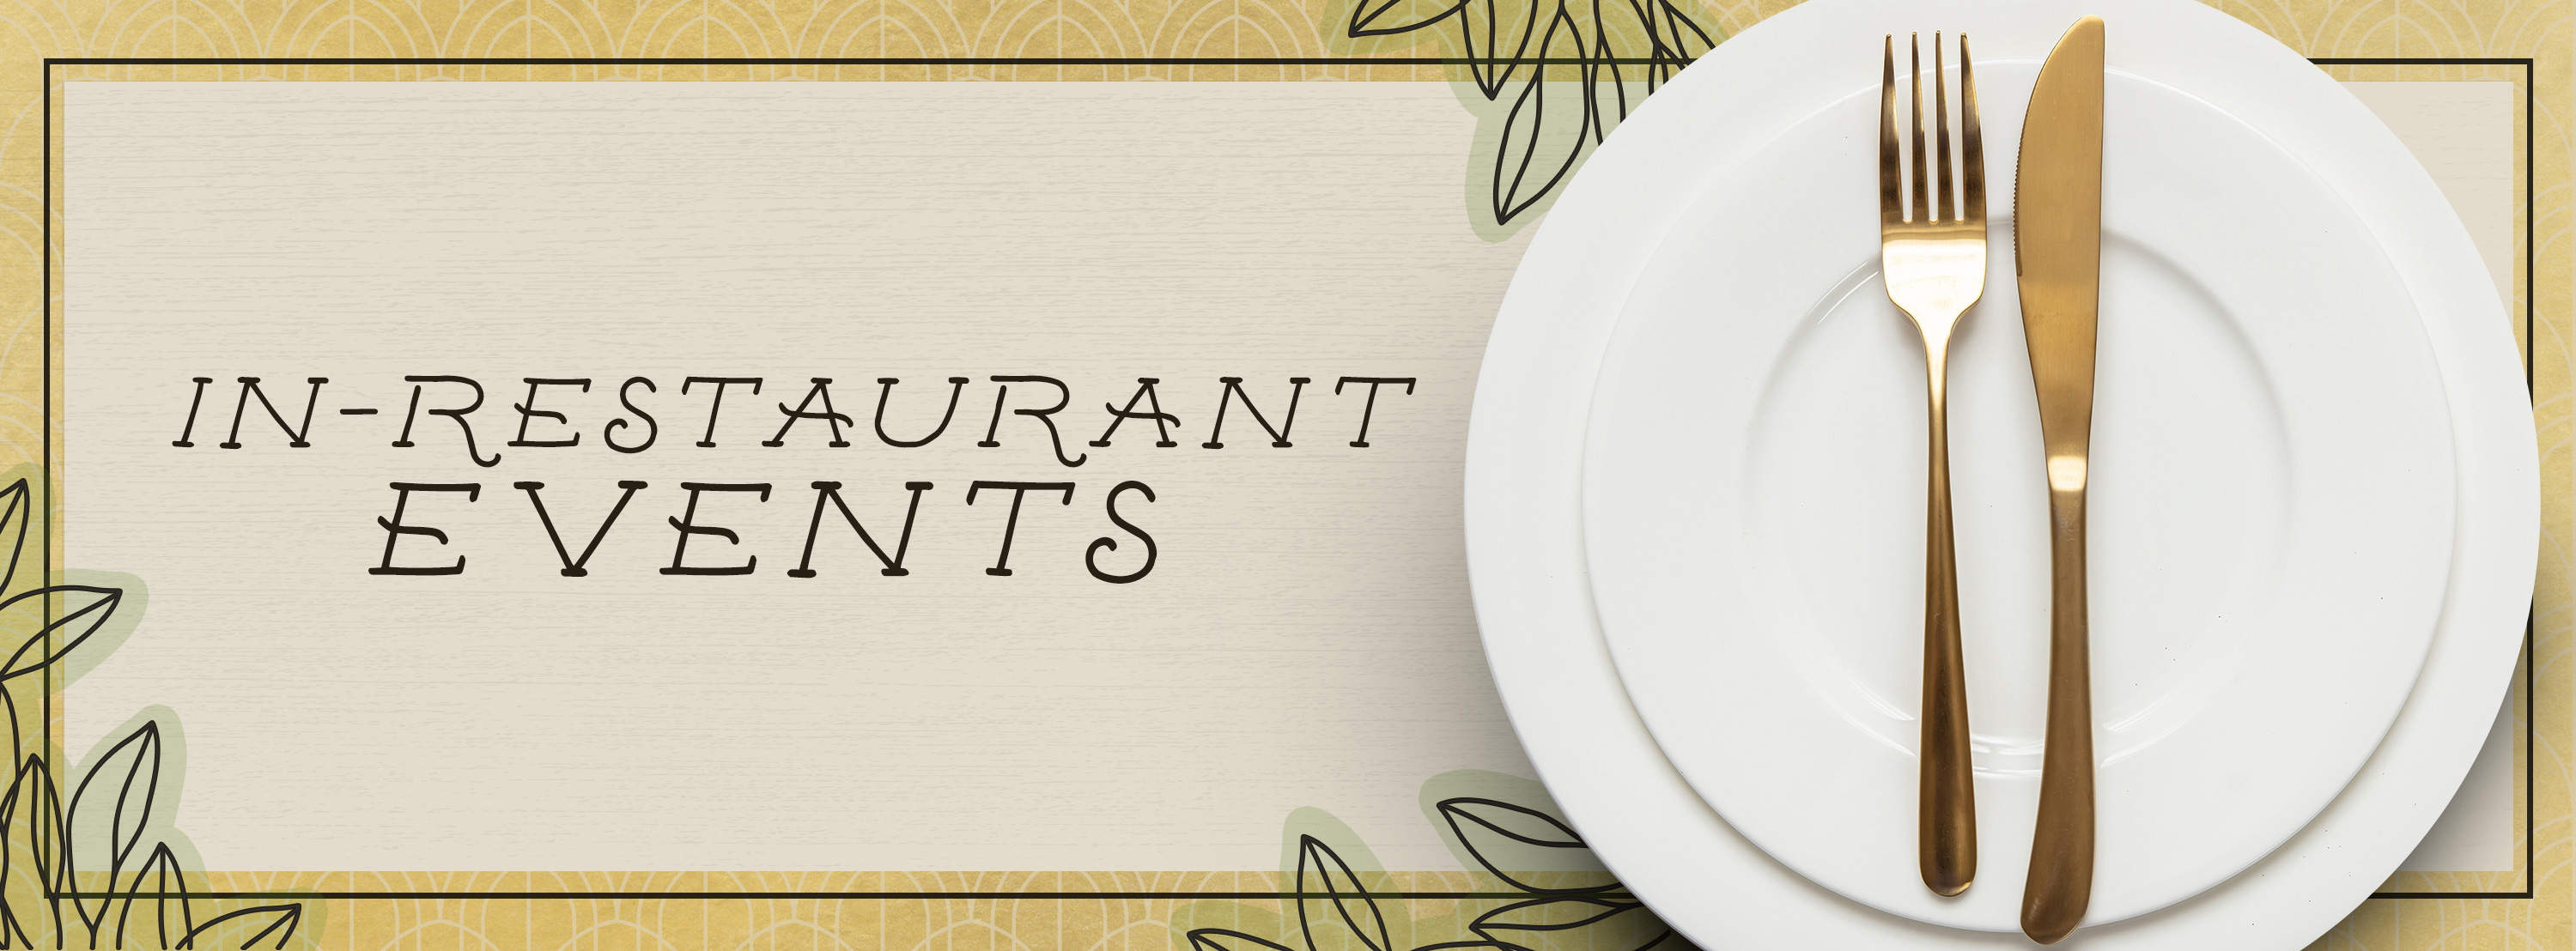 In-Restaurant Events hero image with a fancy place setting